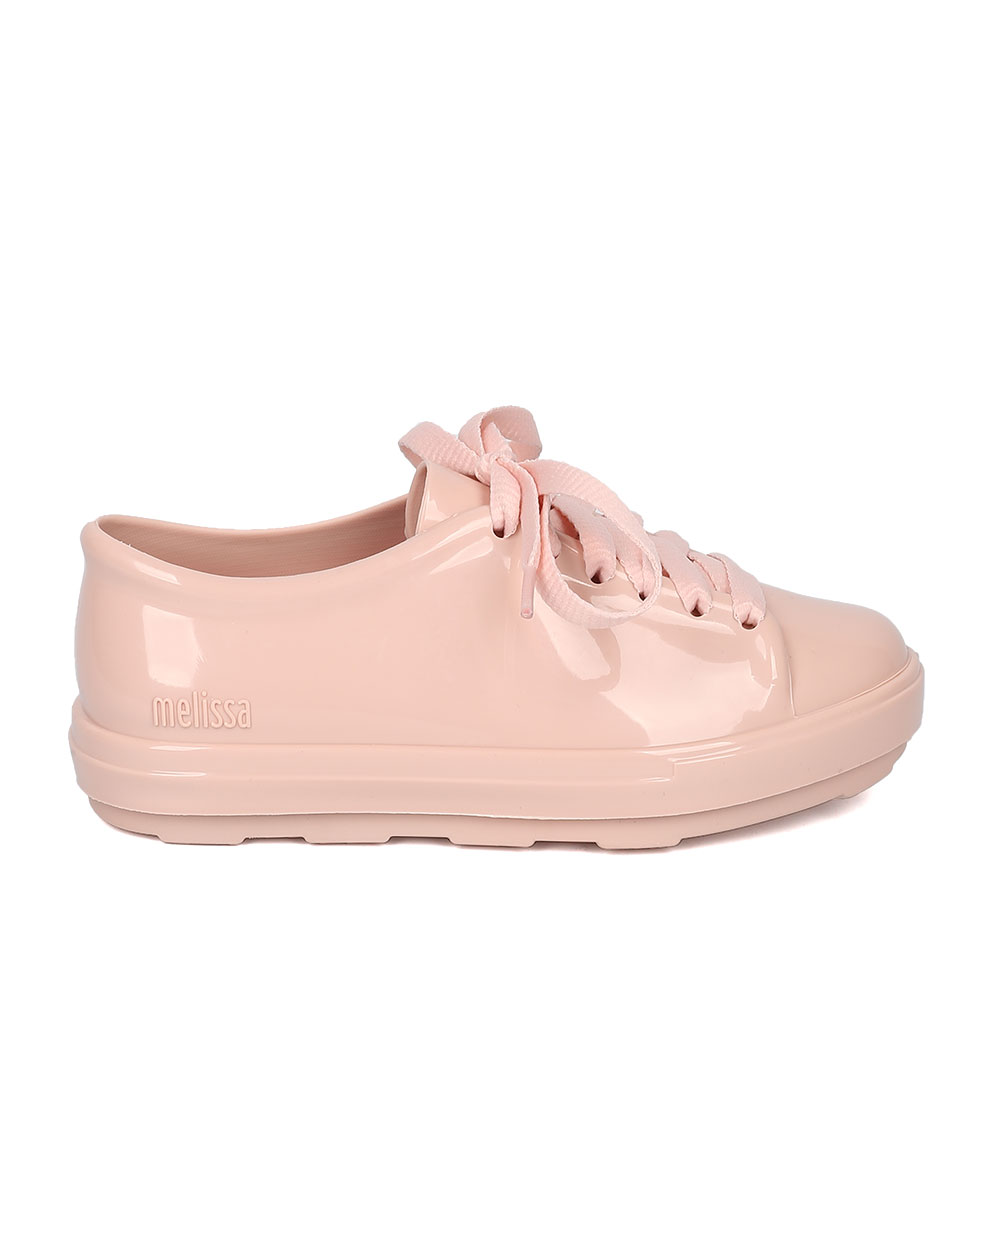 Mel Dreamed By Melissa Mel Be PVC Lace Up Round Toe Low Top Sneaker HB90